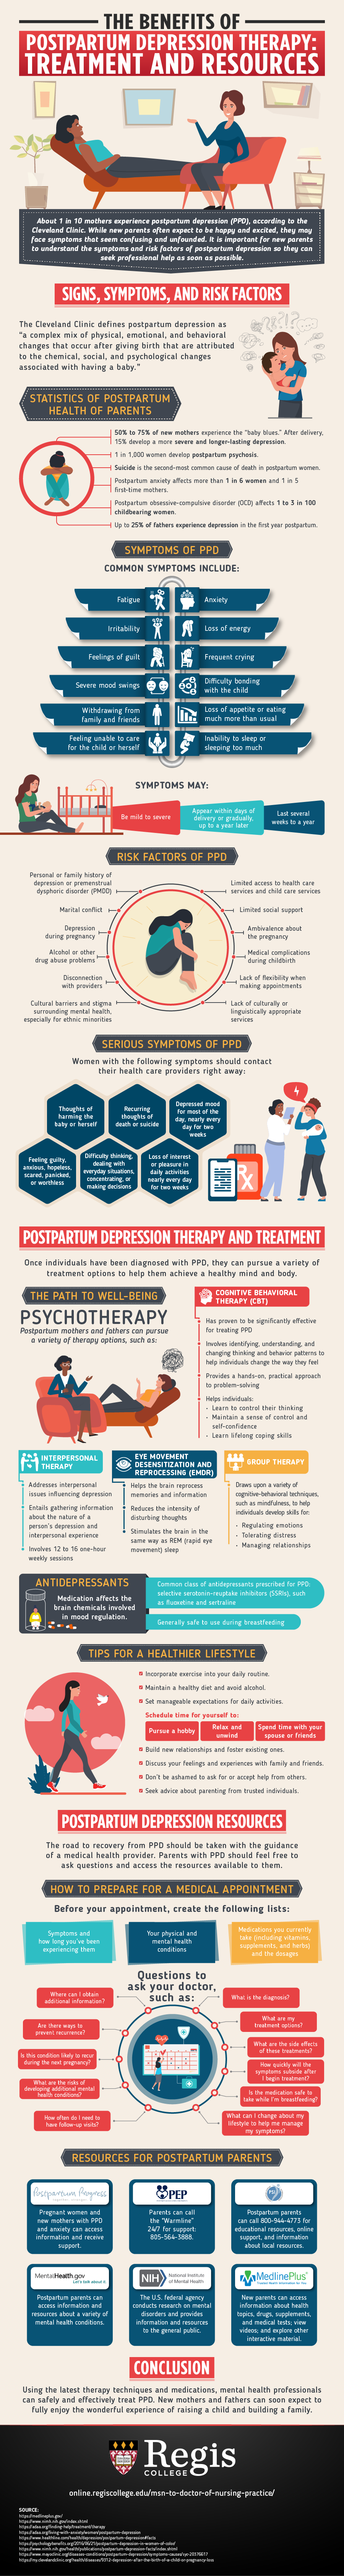 How therapy can be used to treat mothers with postpartum depression (PPD)